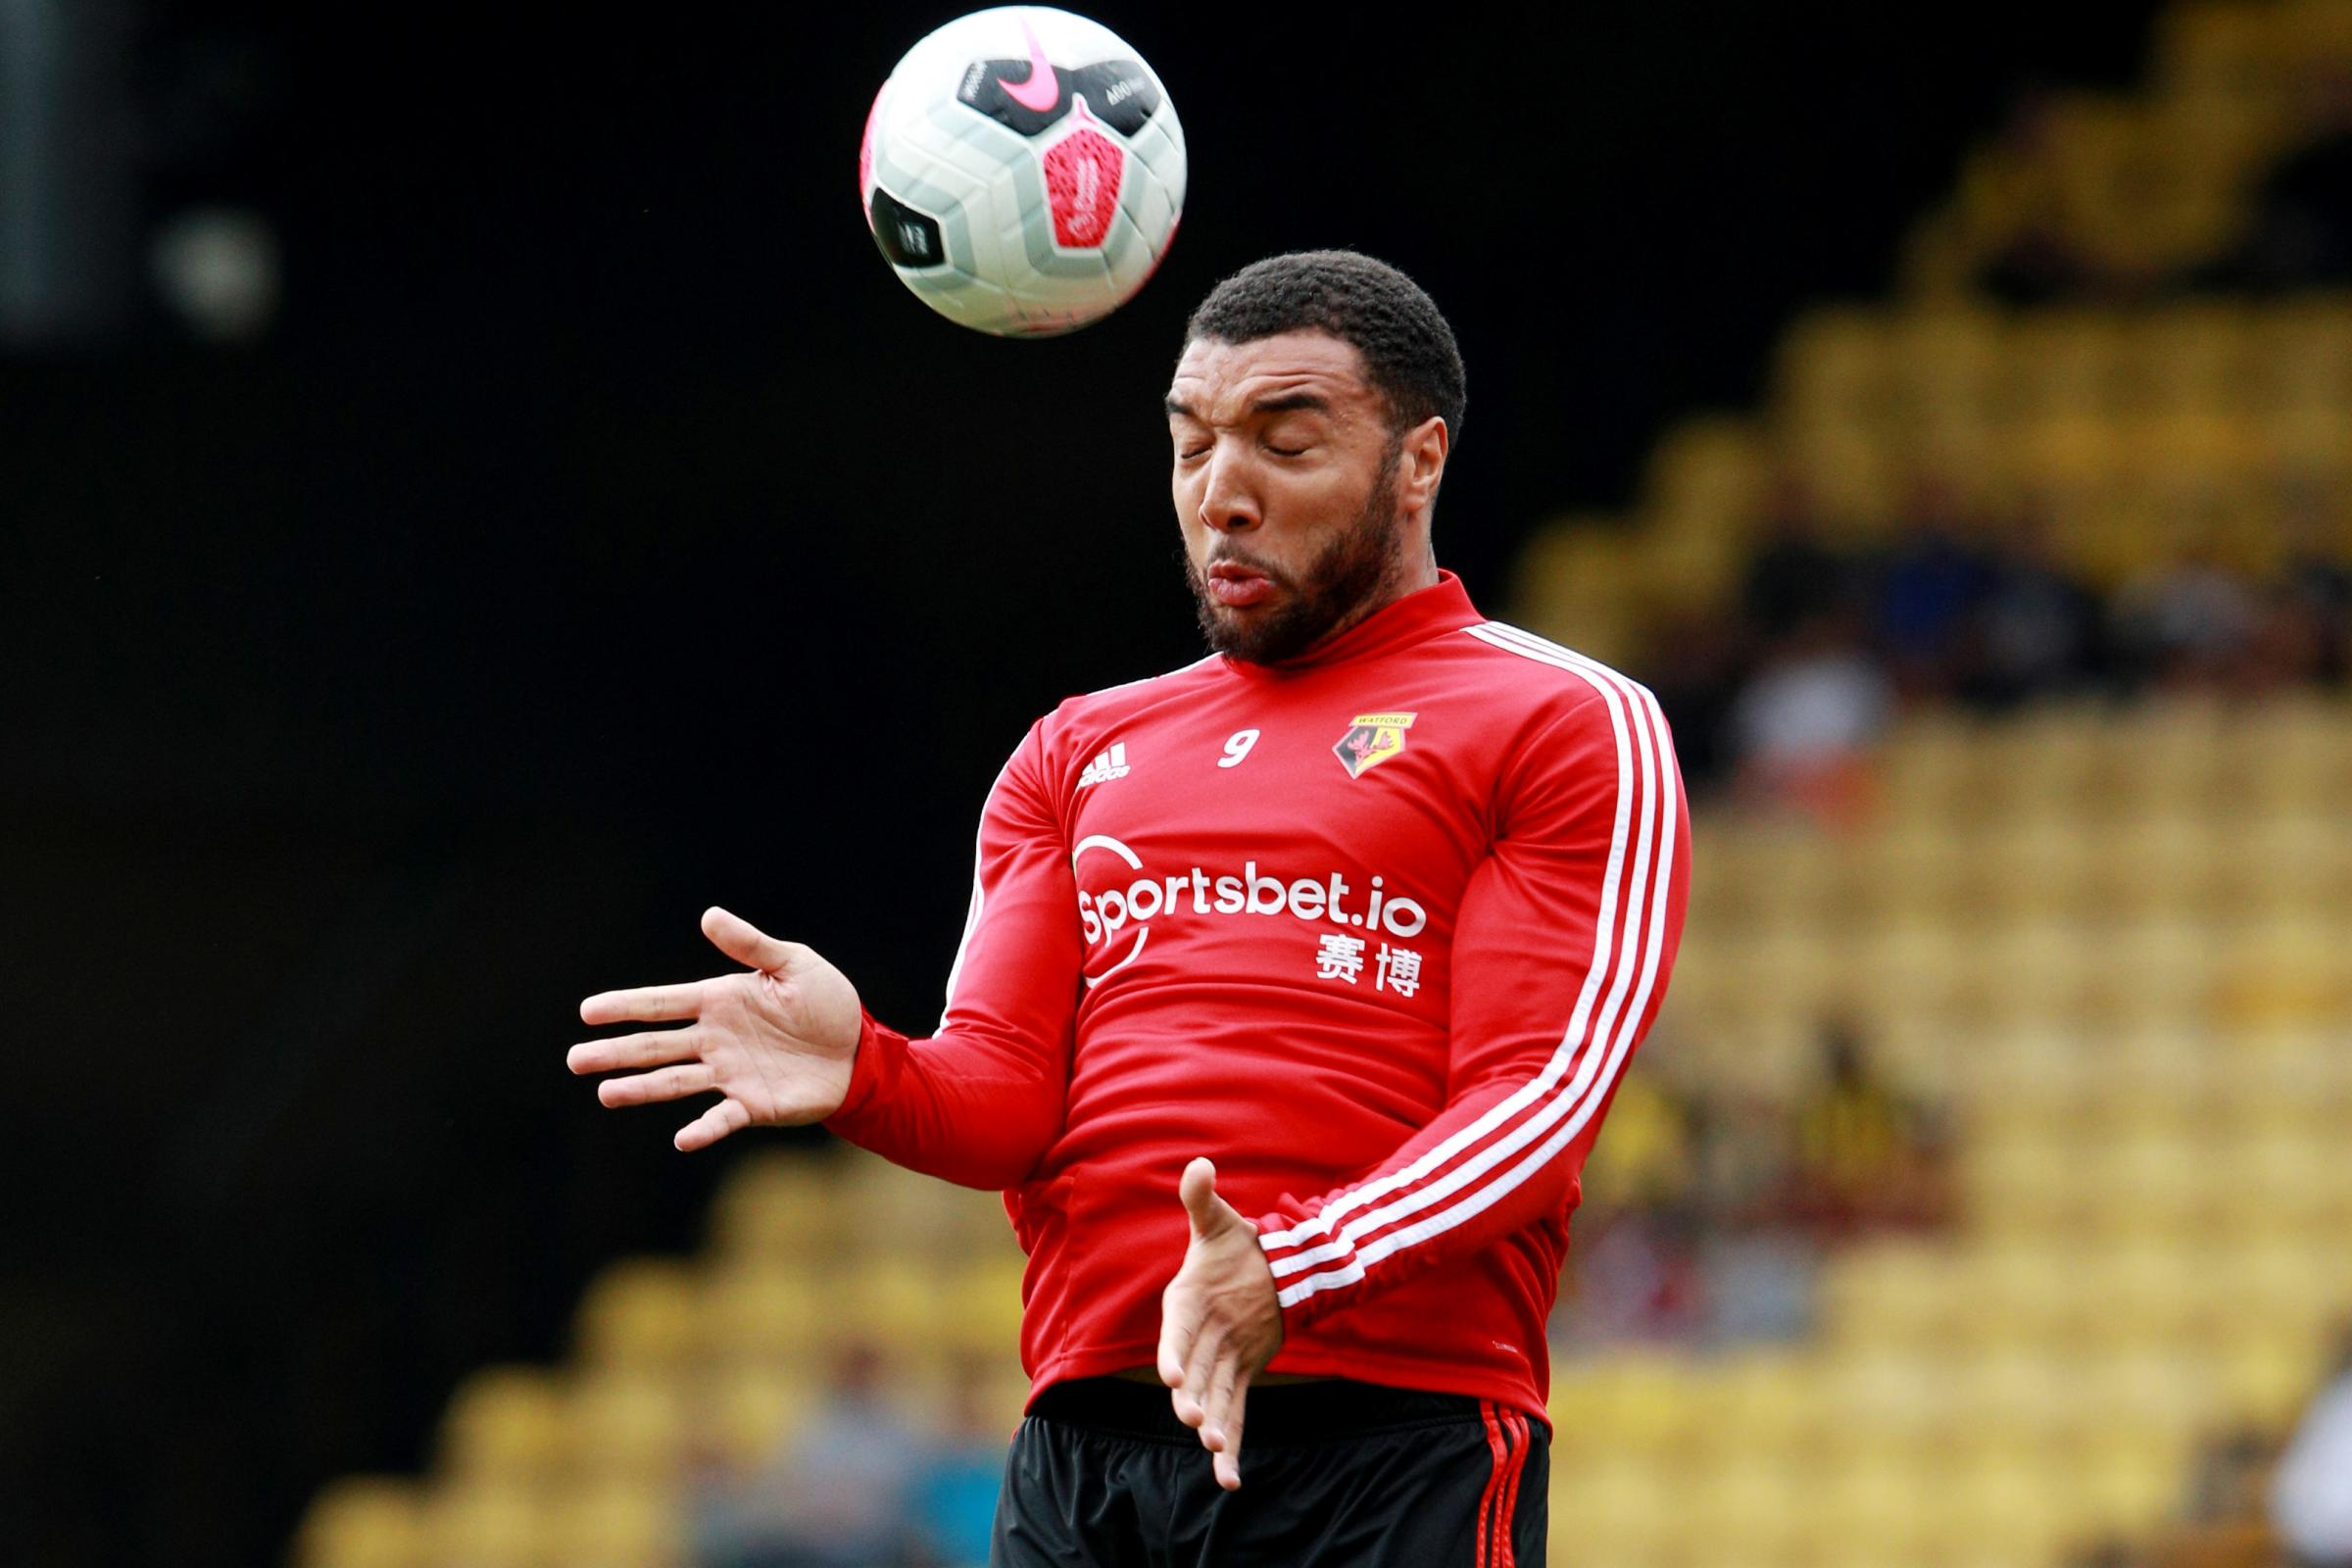 Troy Deeney will be part of Watford's matchday squad to face Norwich City